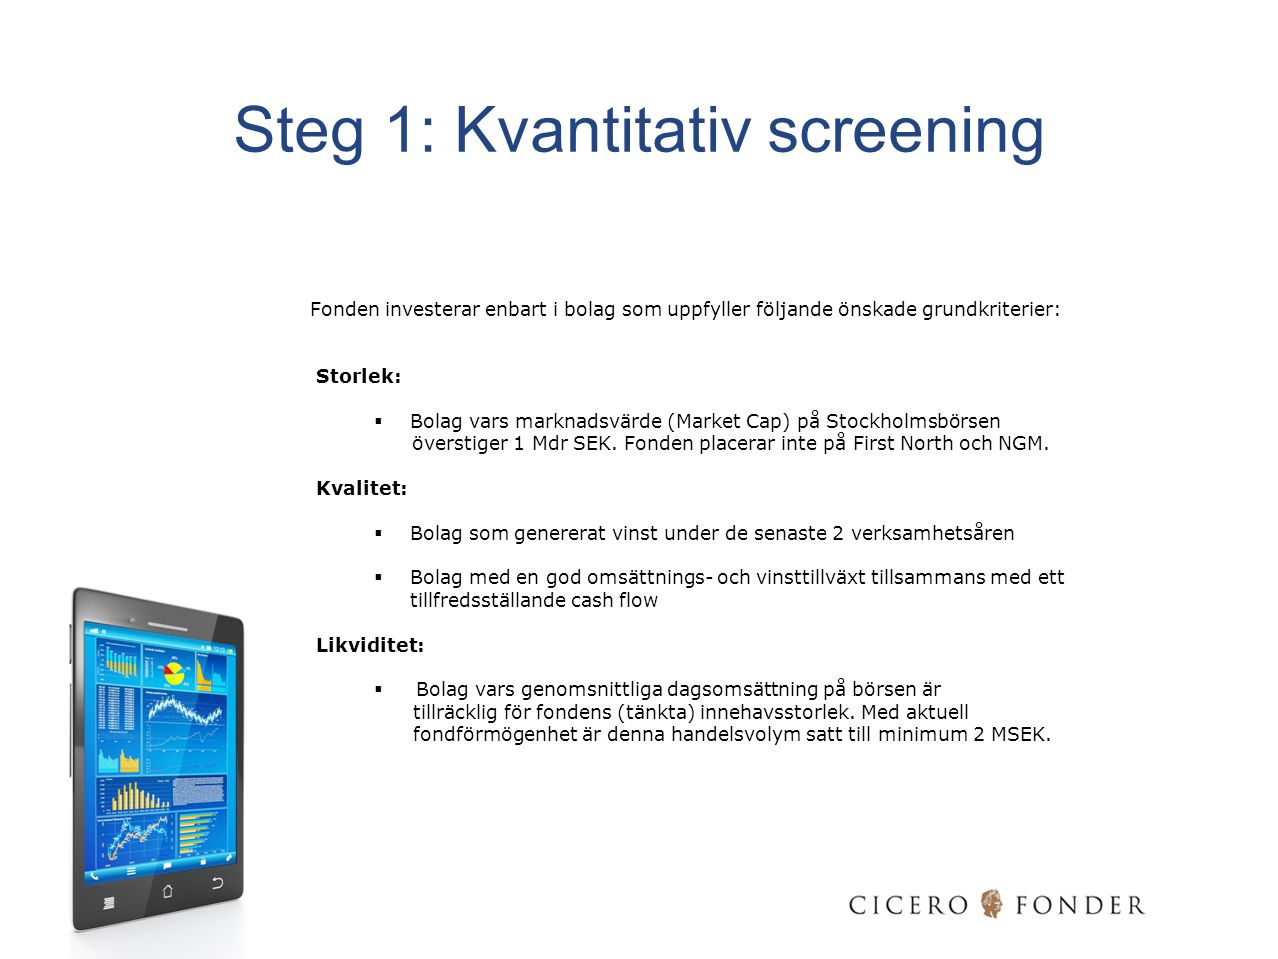 Steg 1: Kvantitativ screening